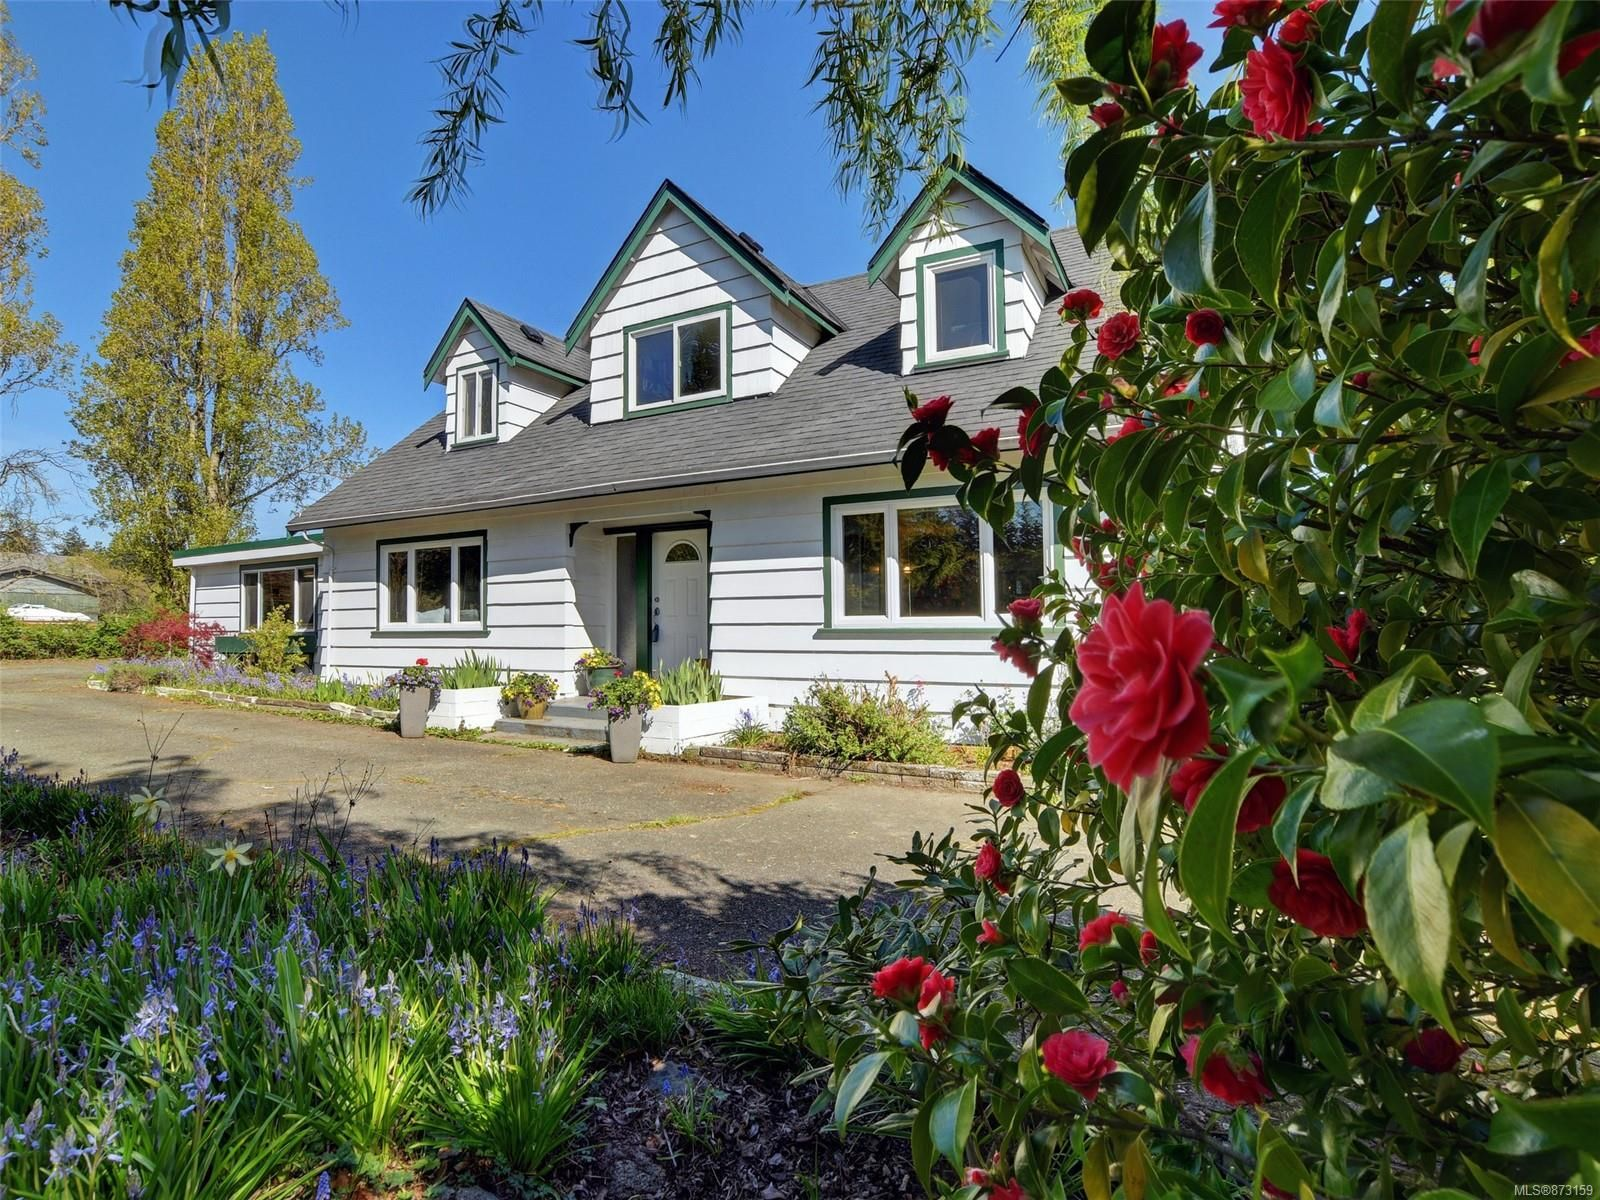 Main Photo: 1890 Mills Rd in : NS Sandown House for sale (North Saanich)  : MLS®# 873159